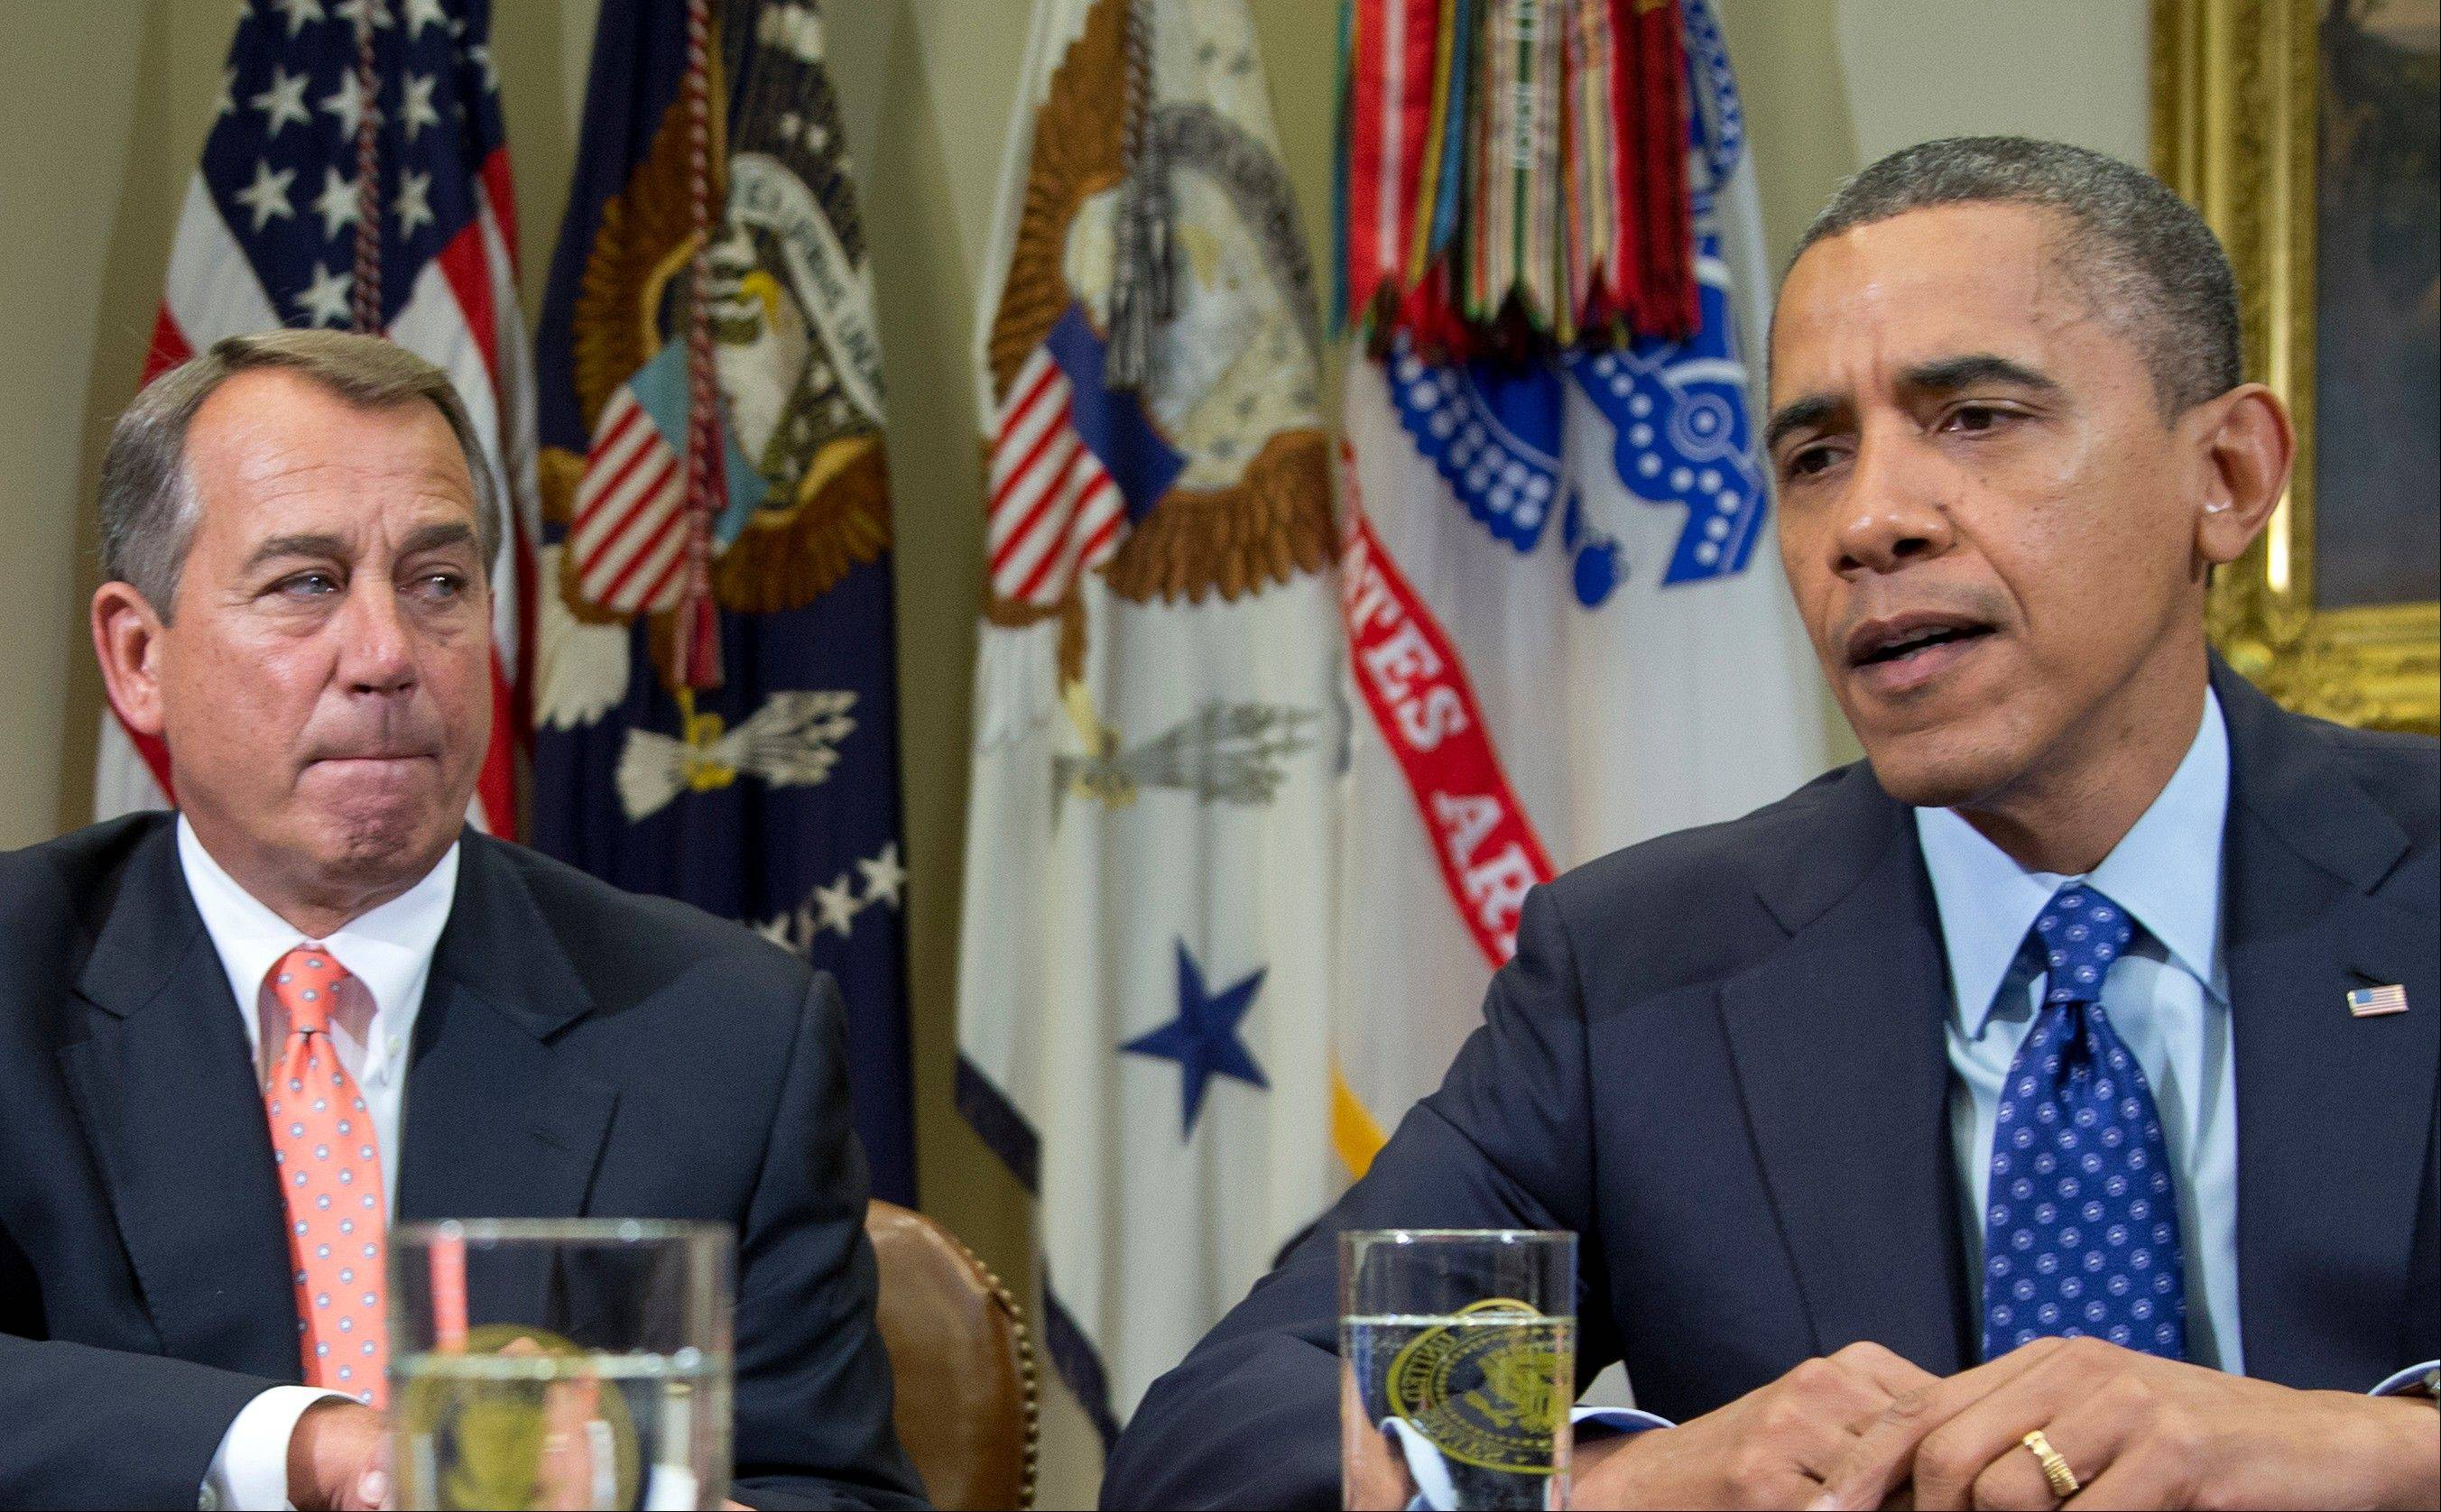 This Nov. 16, 2012 file photo shows President Barack Obama, accompanied by House Speaker John Boehner of Ohio, speaking to reporters in the Roosevelt Room of the White House in Washington.